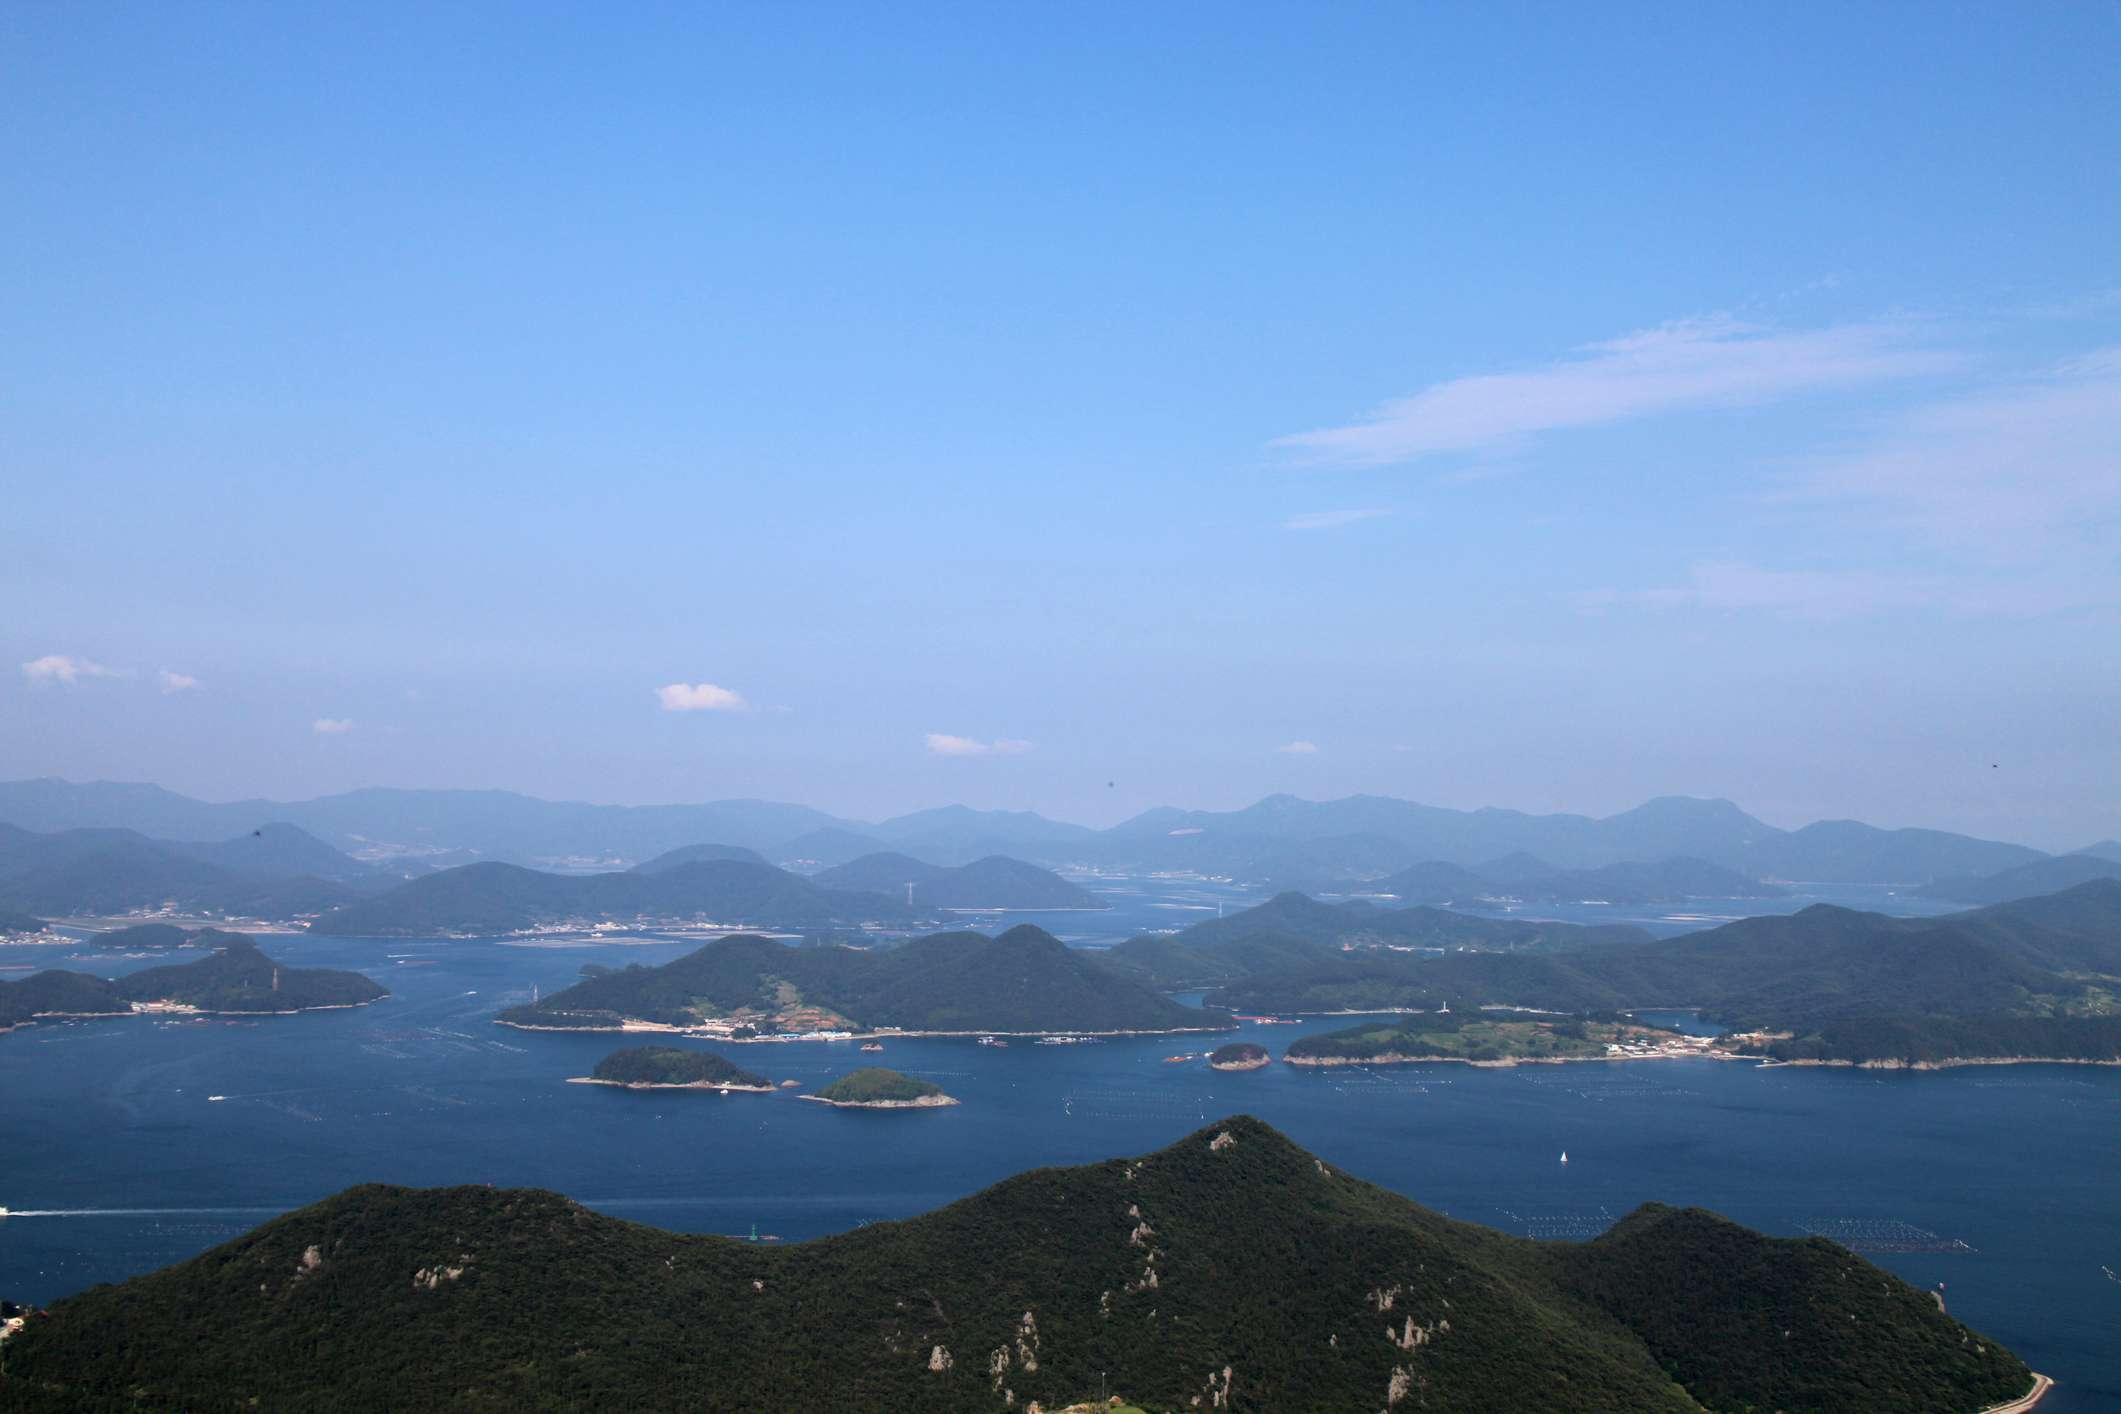 Aerial view of Dadohaehaesang National Park in South Korea